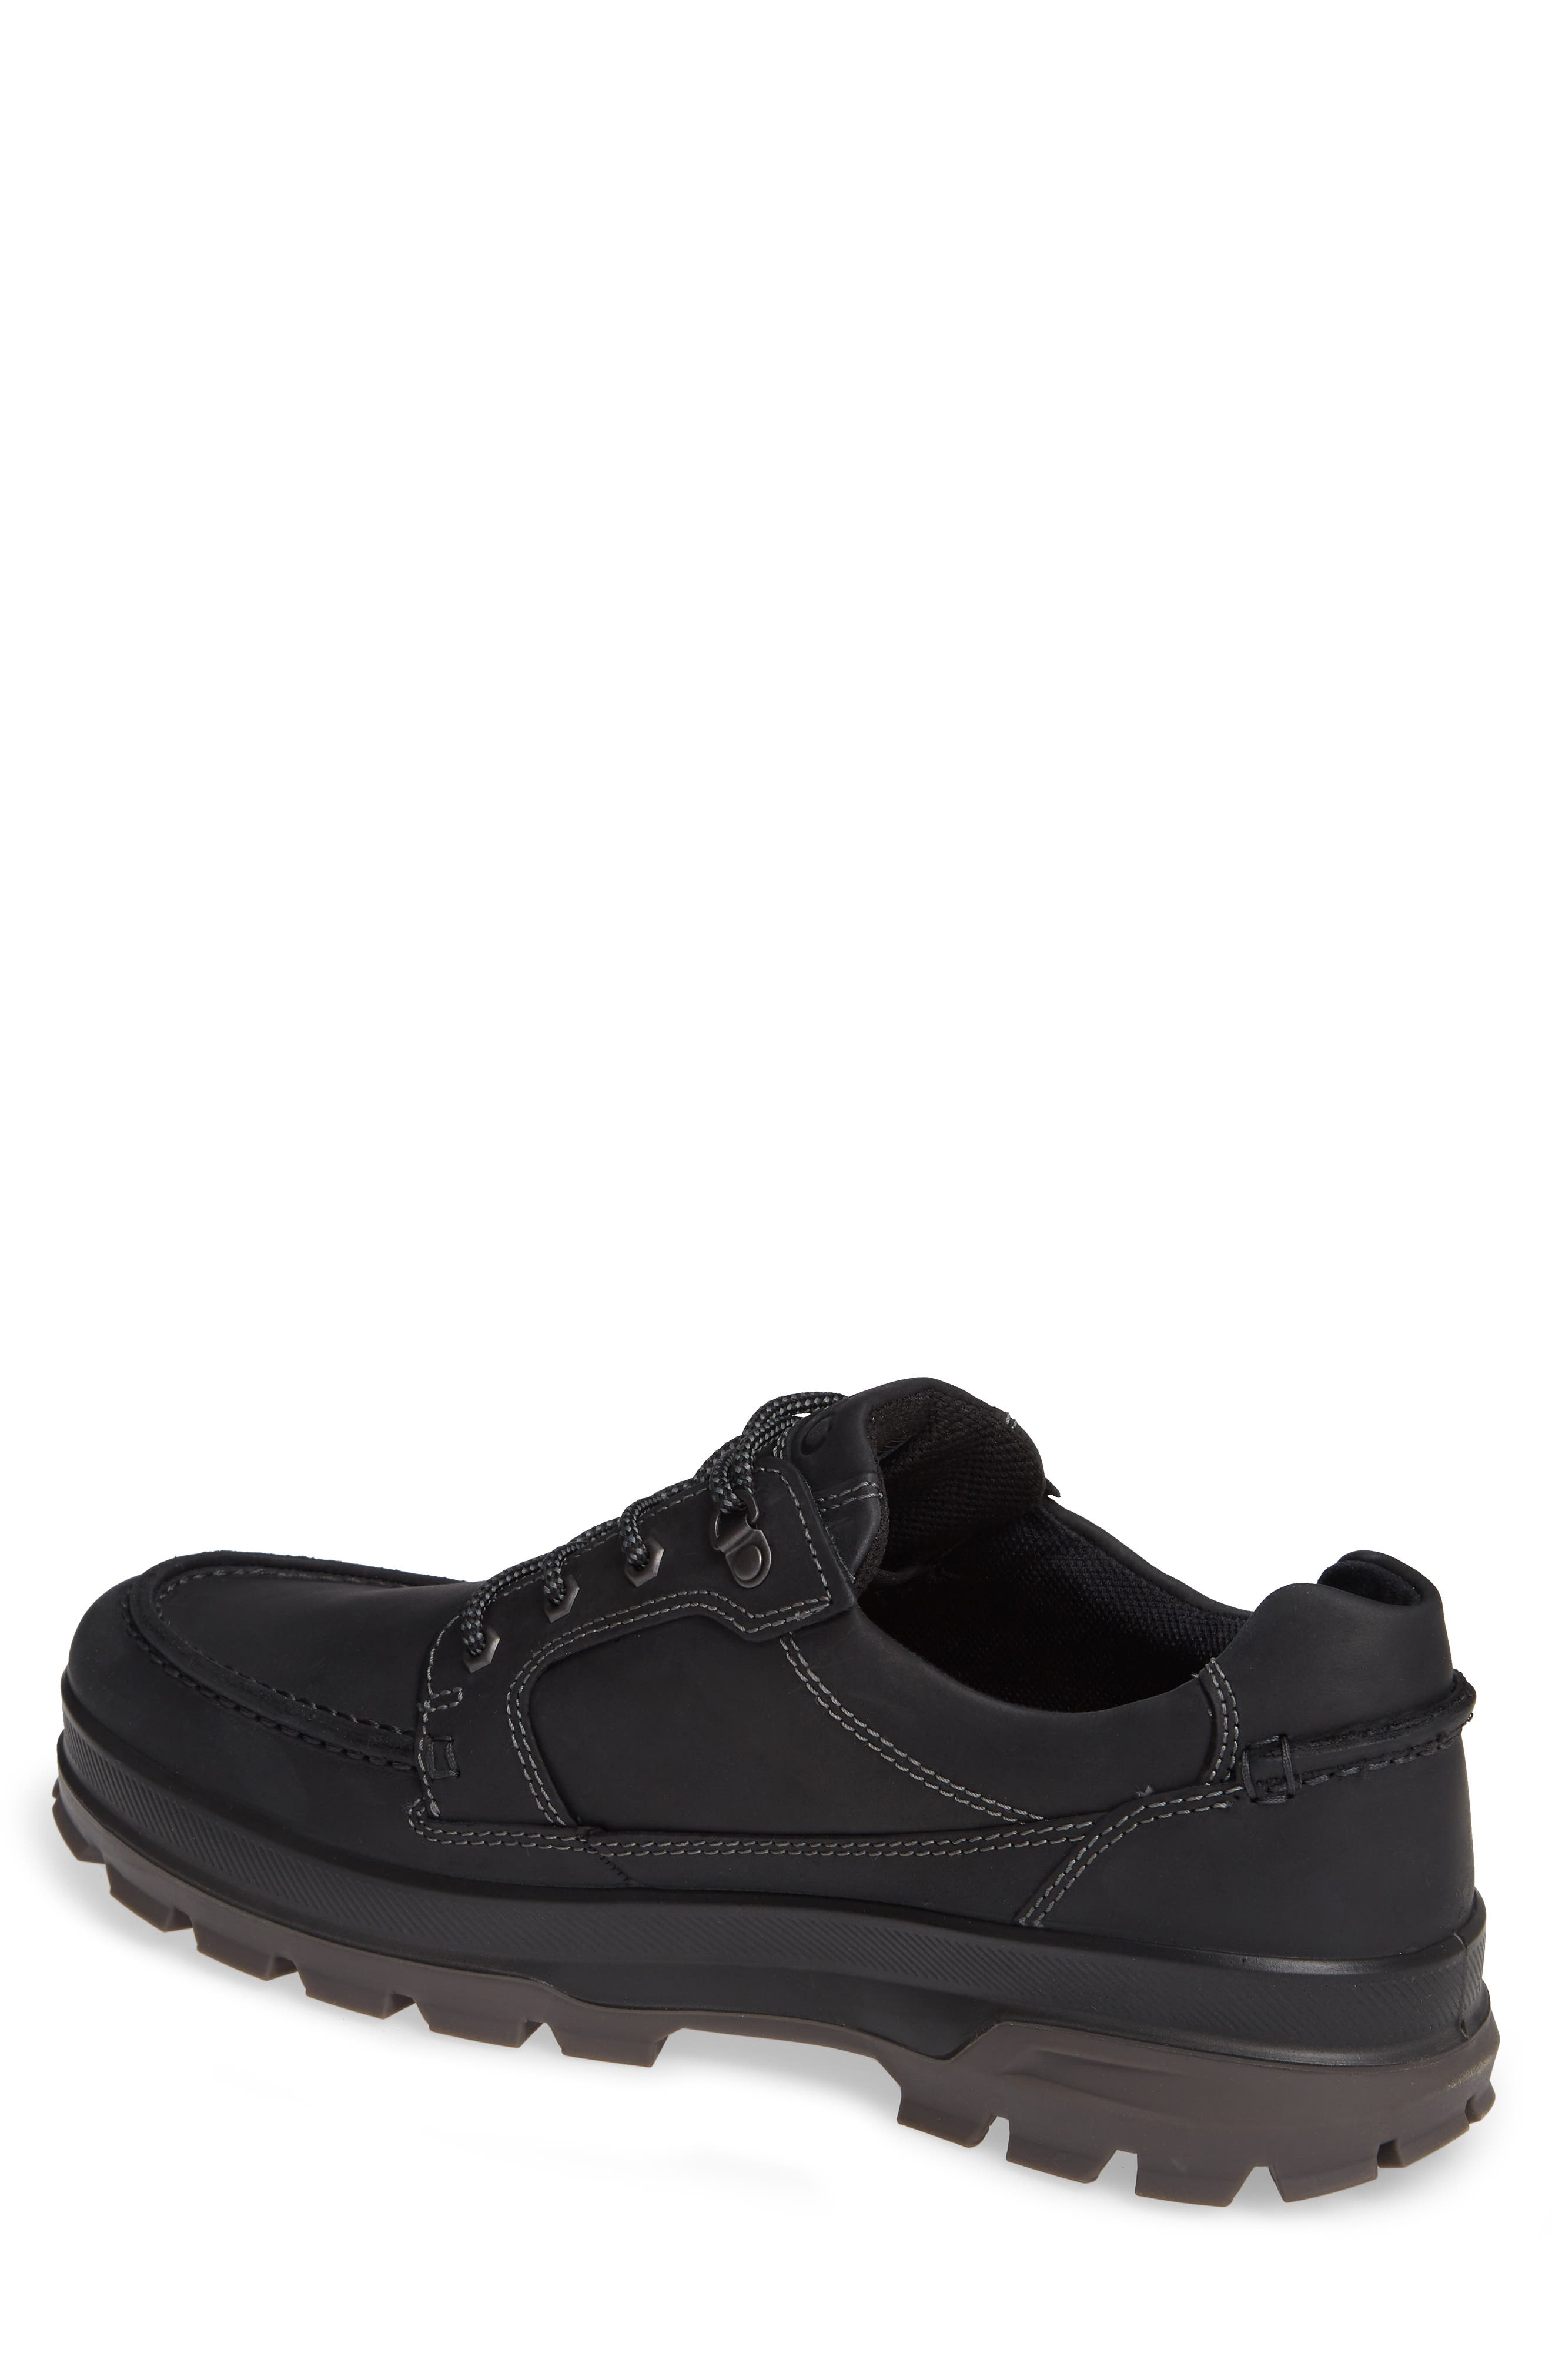 ECCO, Rugged Track Low Gore-Tex<sup>®</sup> Oxford, Alternate thumbnail 2, color, 003